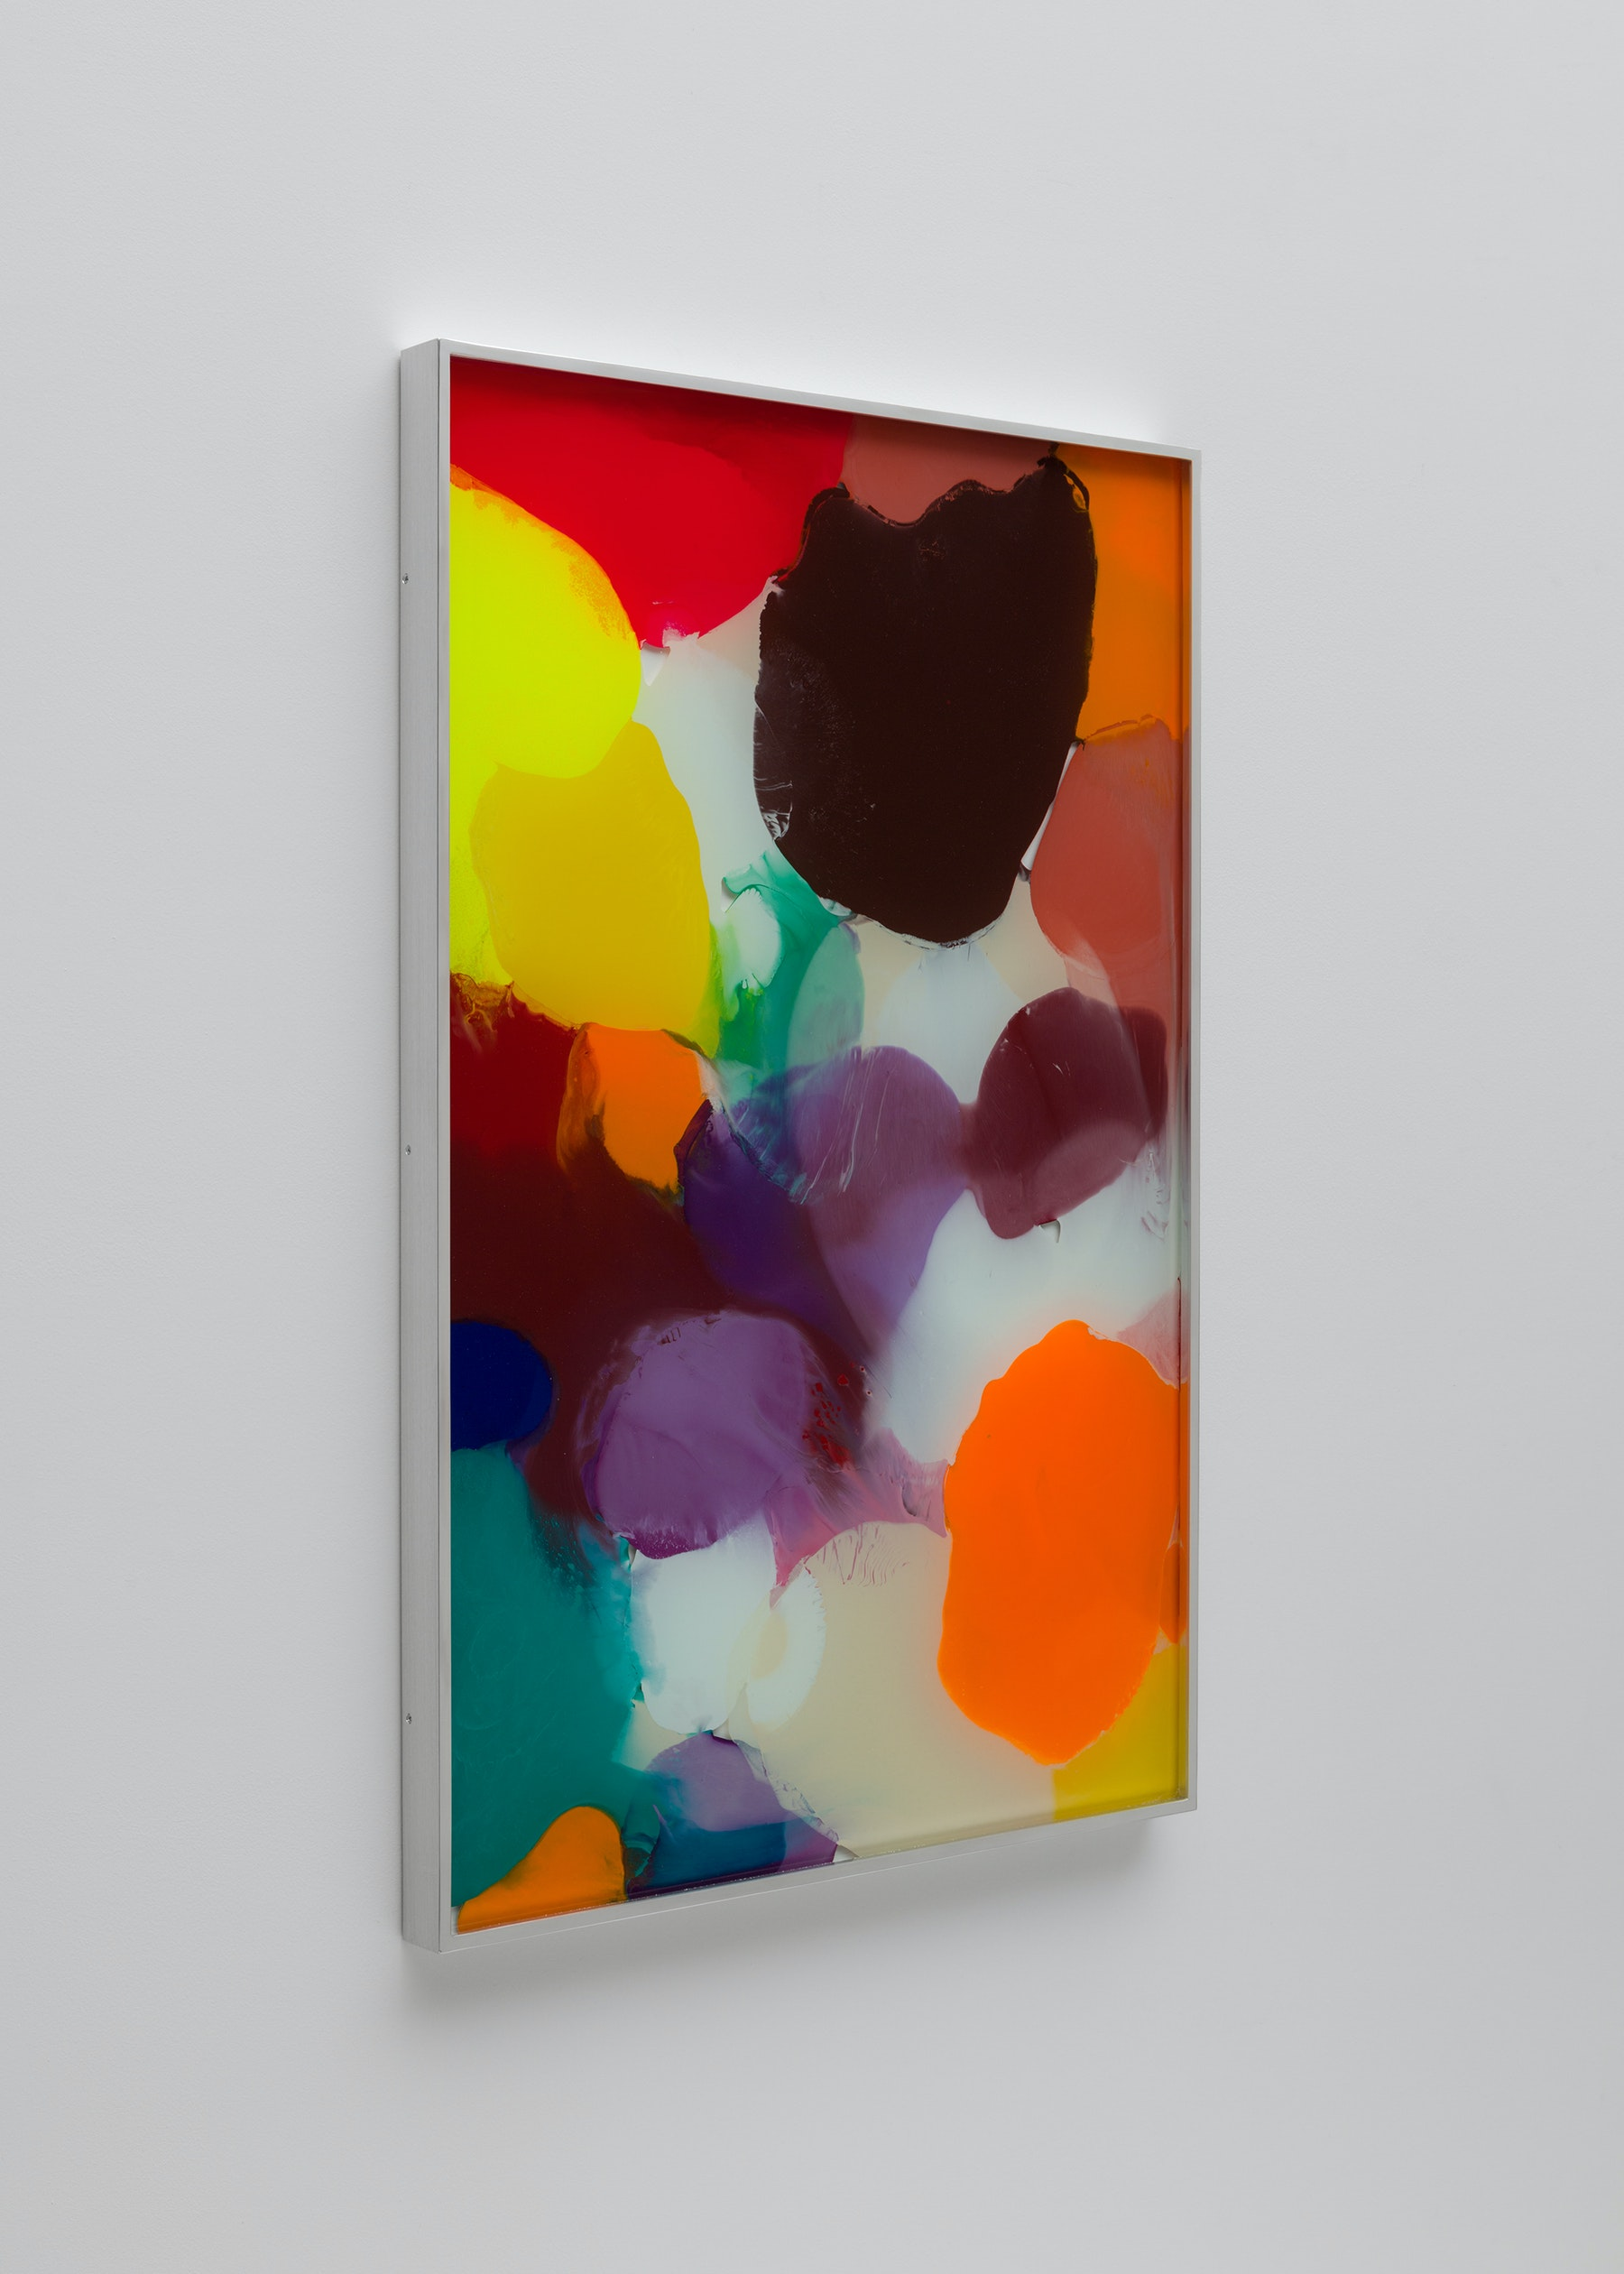 "Yunhee Min ""Up Close in Distance (variation study a4),"" 2018 Enamel on laminated glass 34.5 x 22.5"" [HxW] (87.63 x 57.15 cm) Inventory #MIN342 Courtesy of the artist and Vielmetter Los Angeles Photo credit: Brica Wilcox"